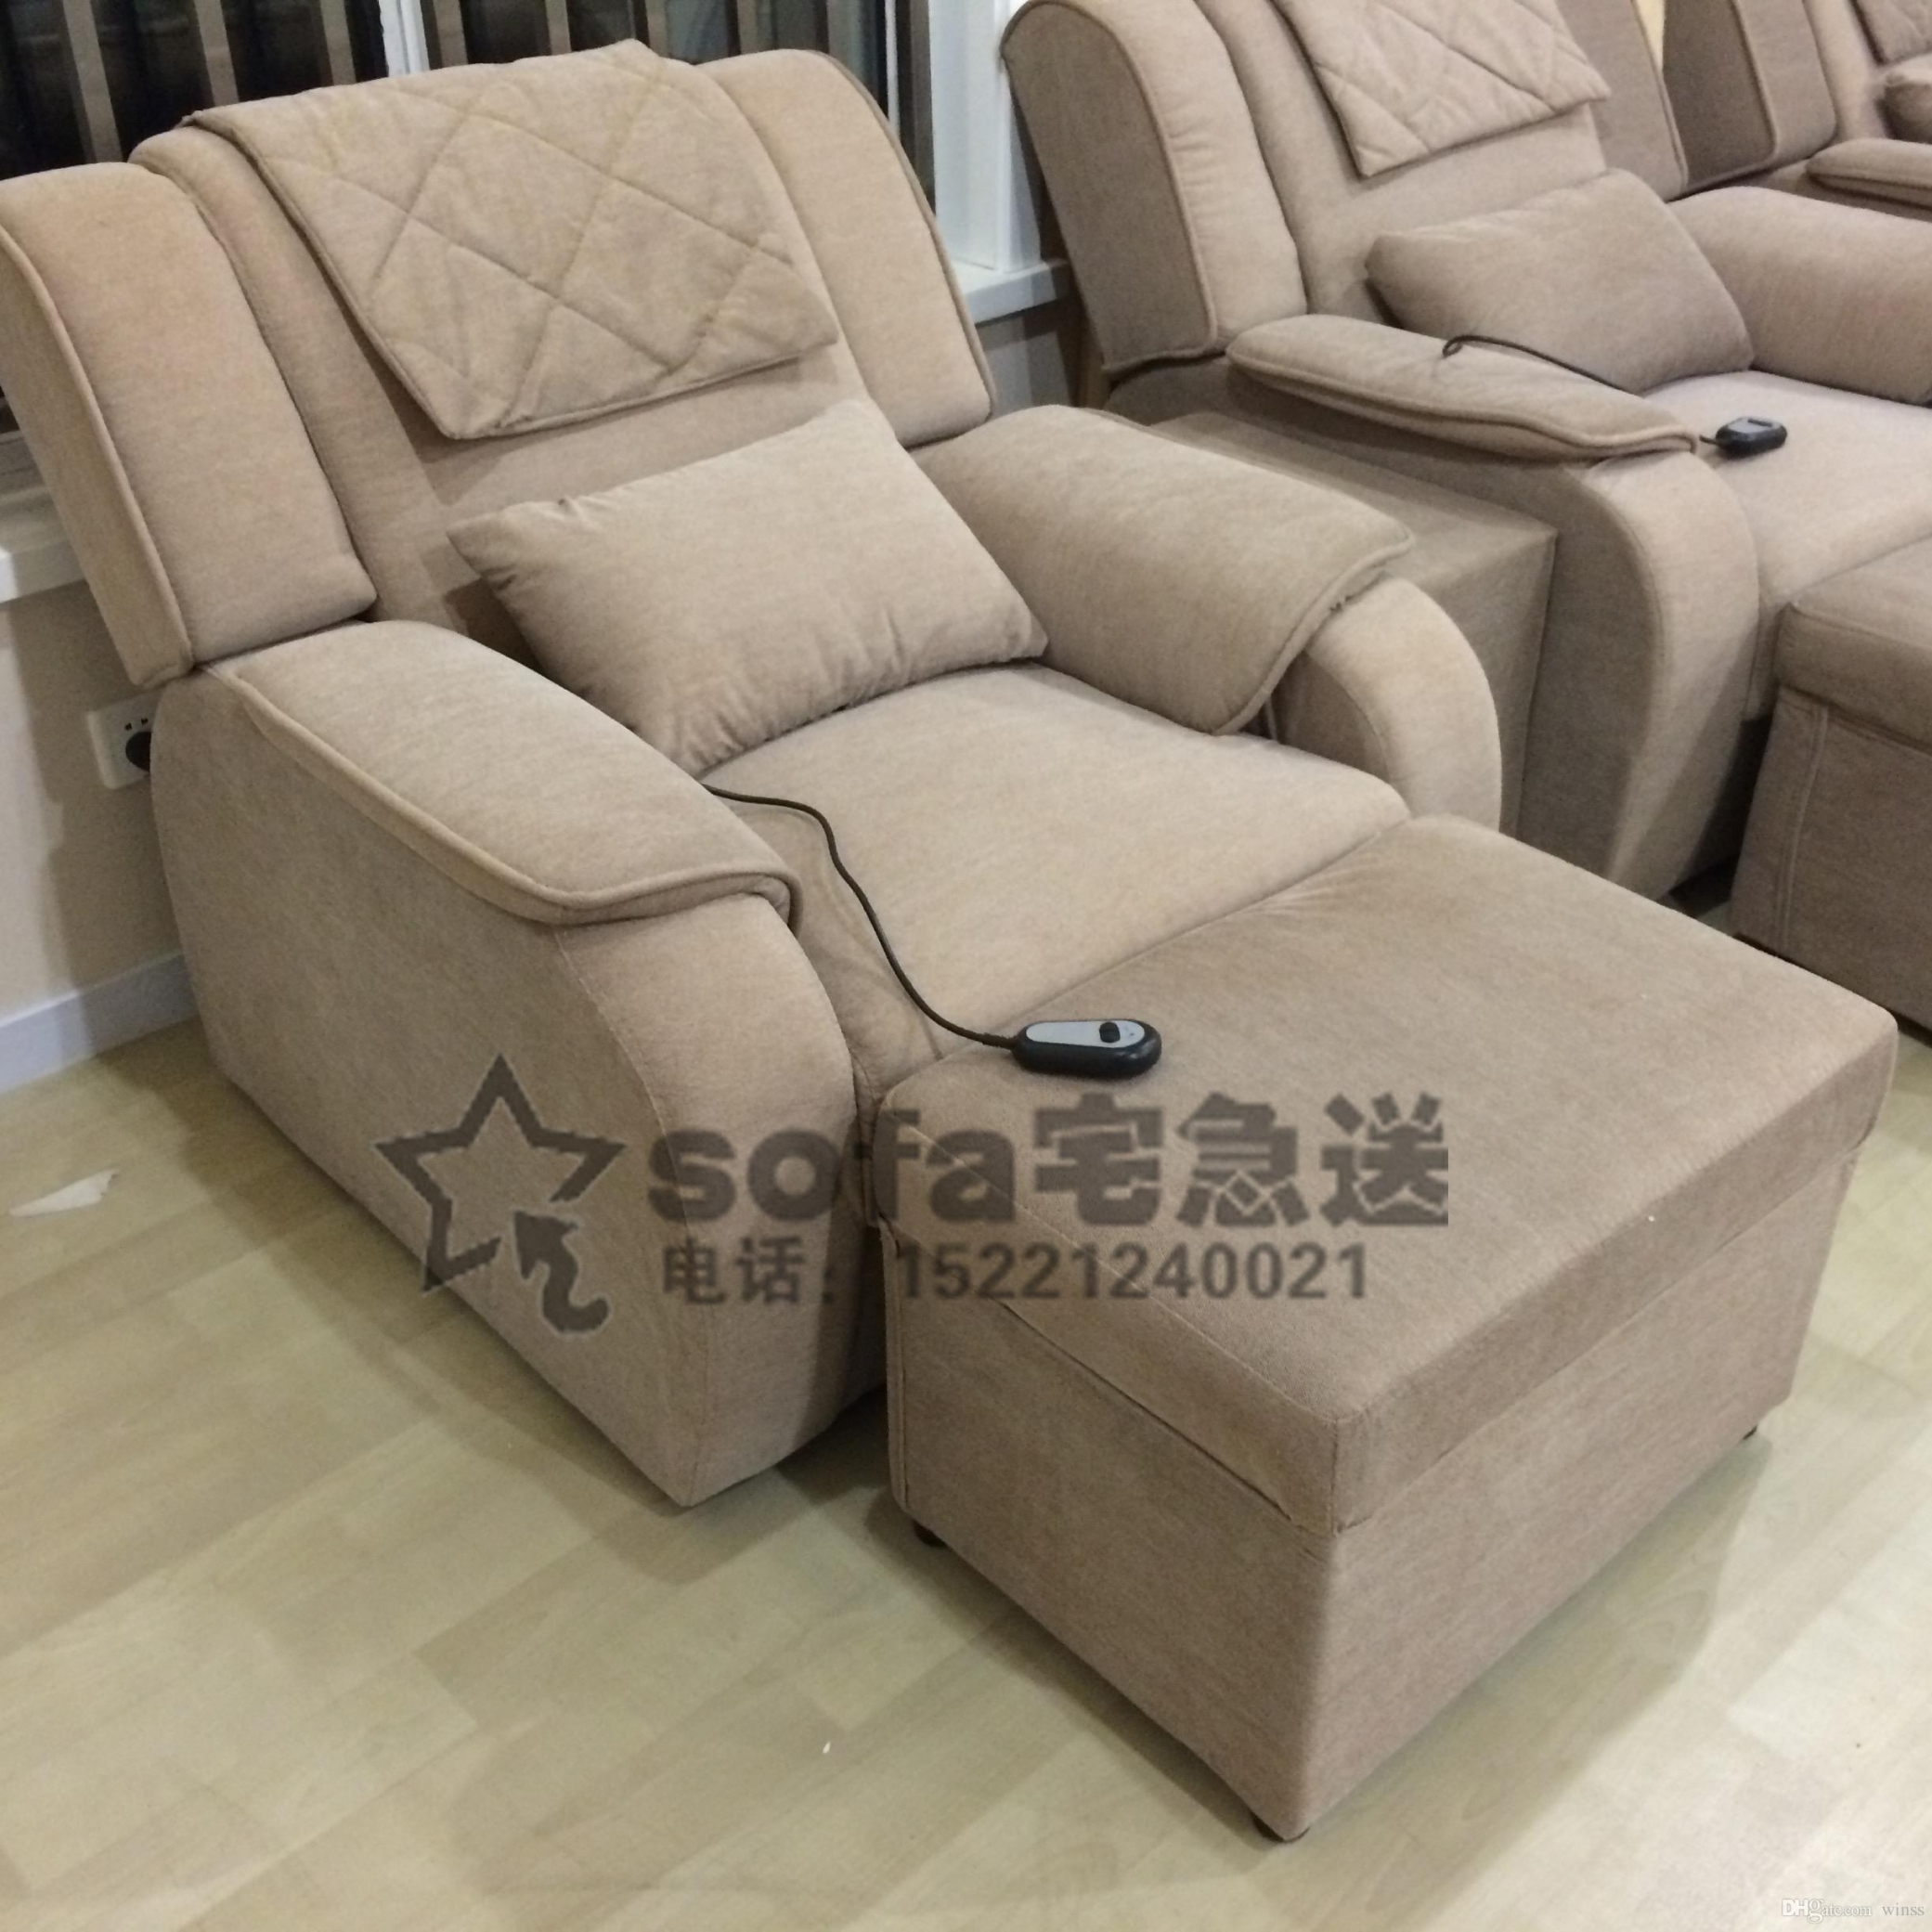 Superieur Featured Image Of Foot Massage Sofa Chairs